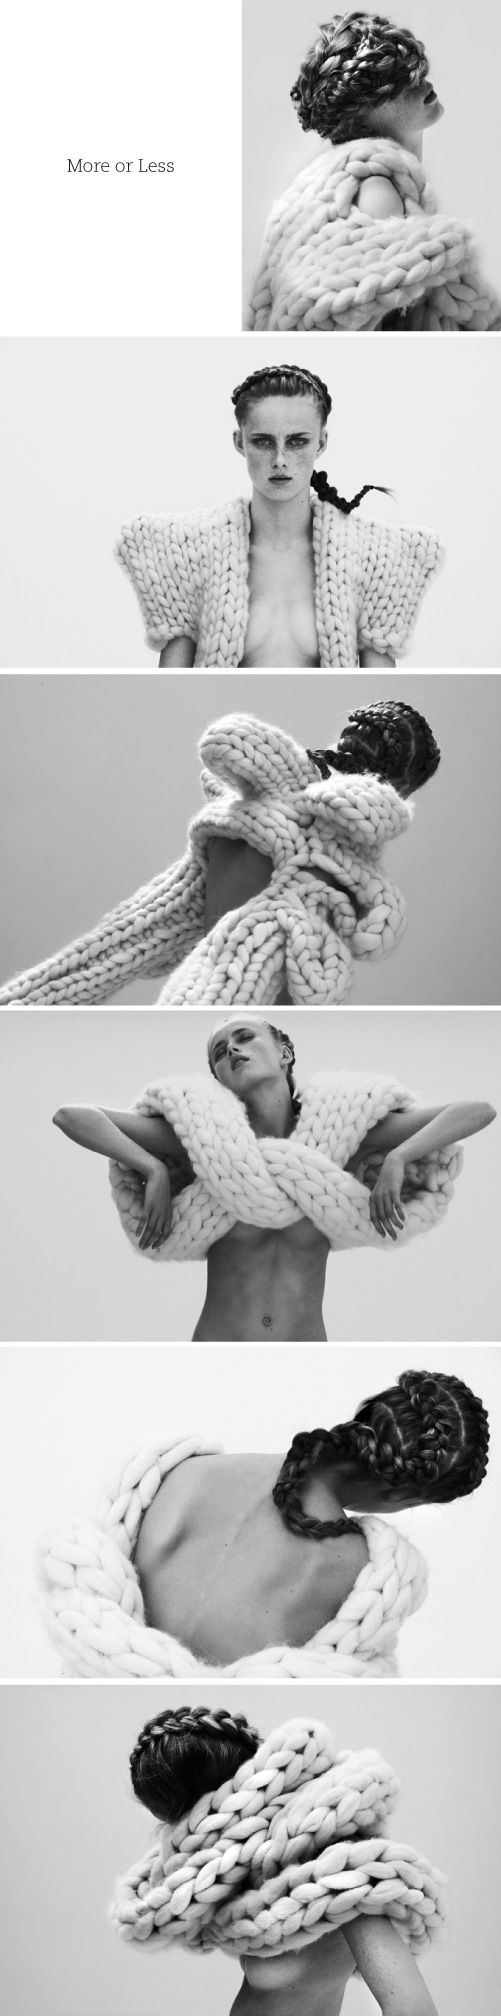 Sculptural Fashion - 3D knitwear using chunky wool to experiment with voluminous knitted & braided structures // Nanna van Blaaderen: